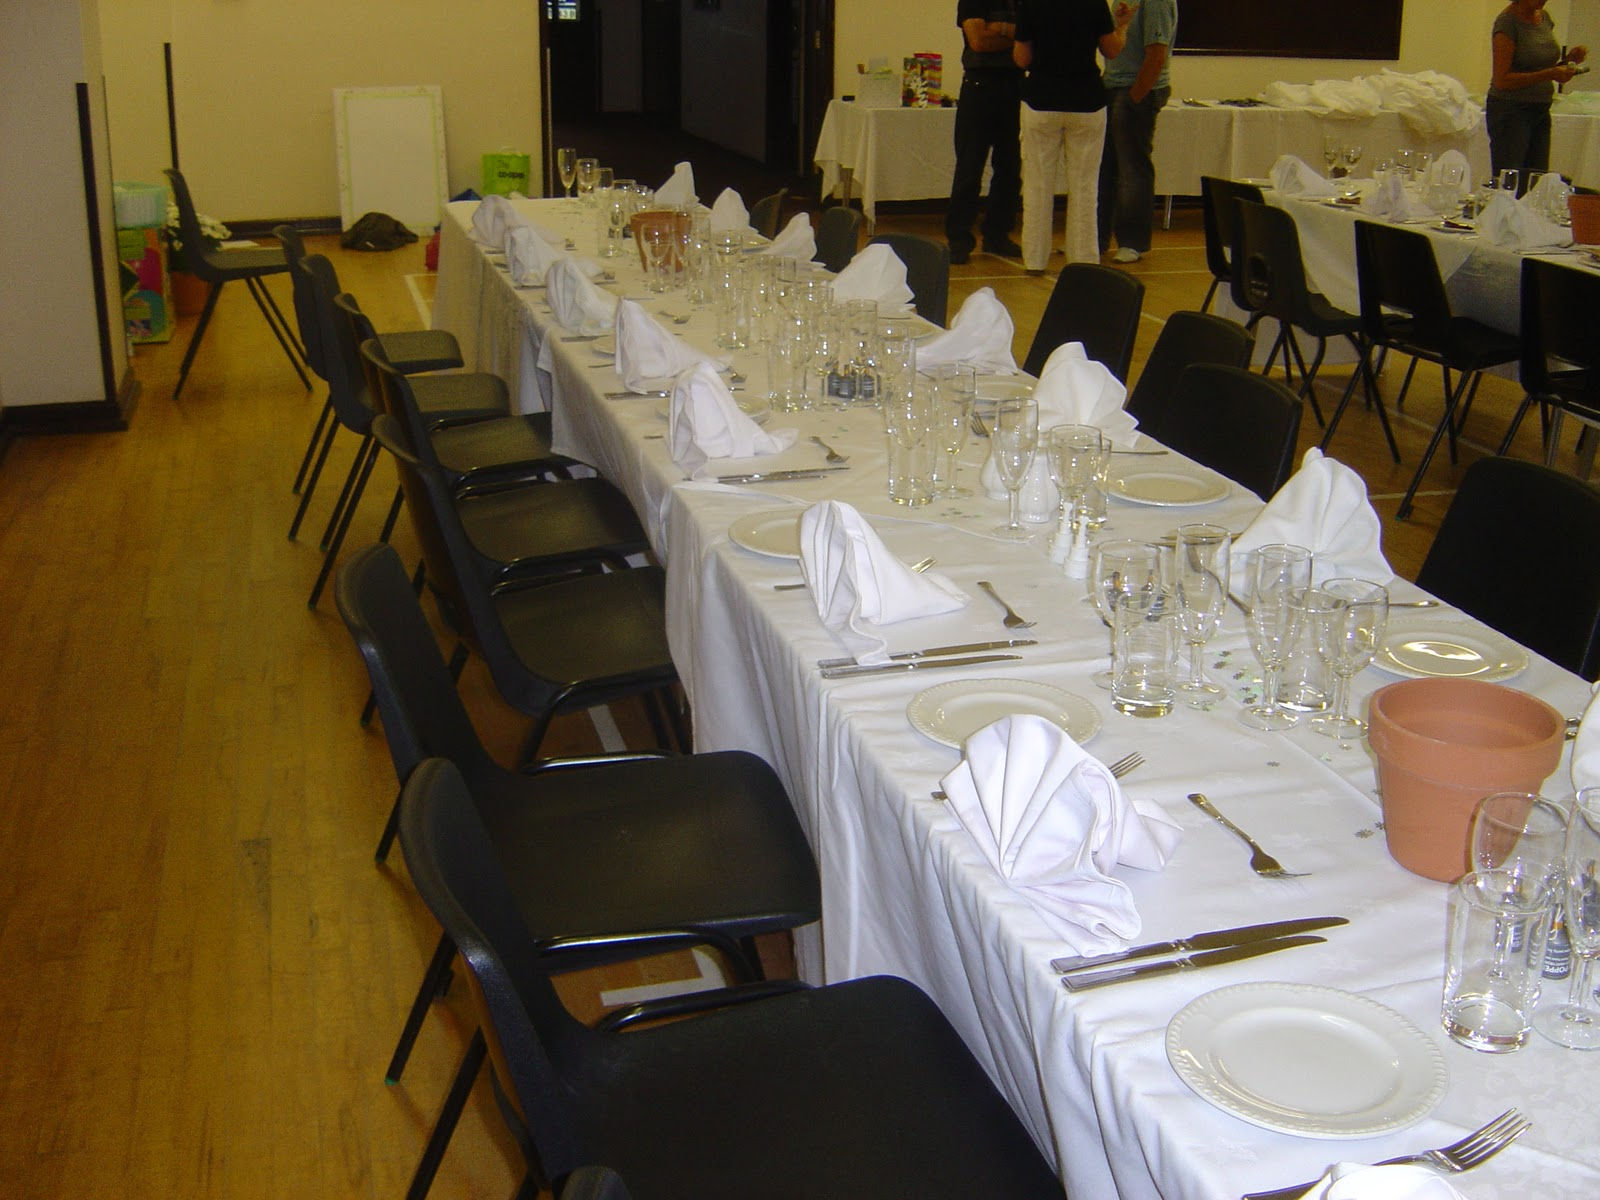 Sensational All Angles Chair Covers And Venue Dressing Yelverton Dailytribune Chair Design For Home Dailytribuneorg